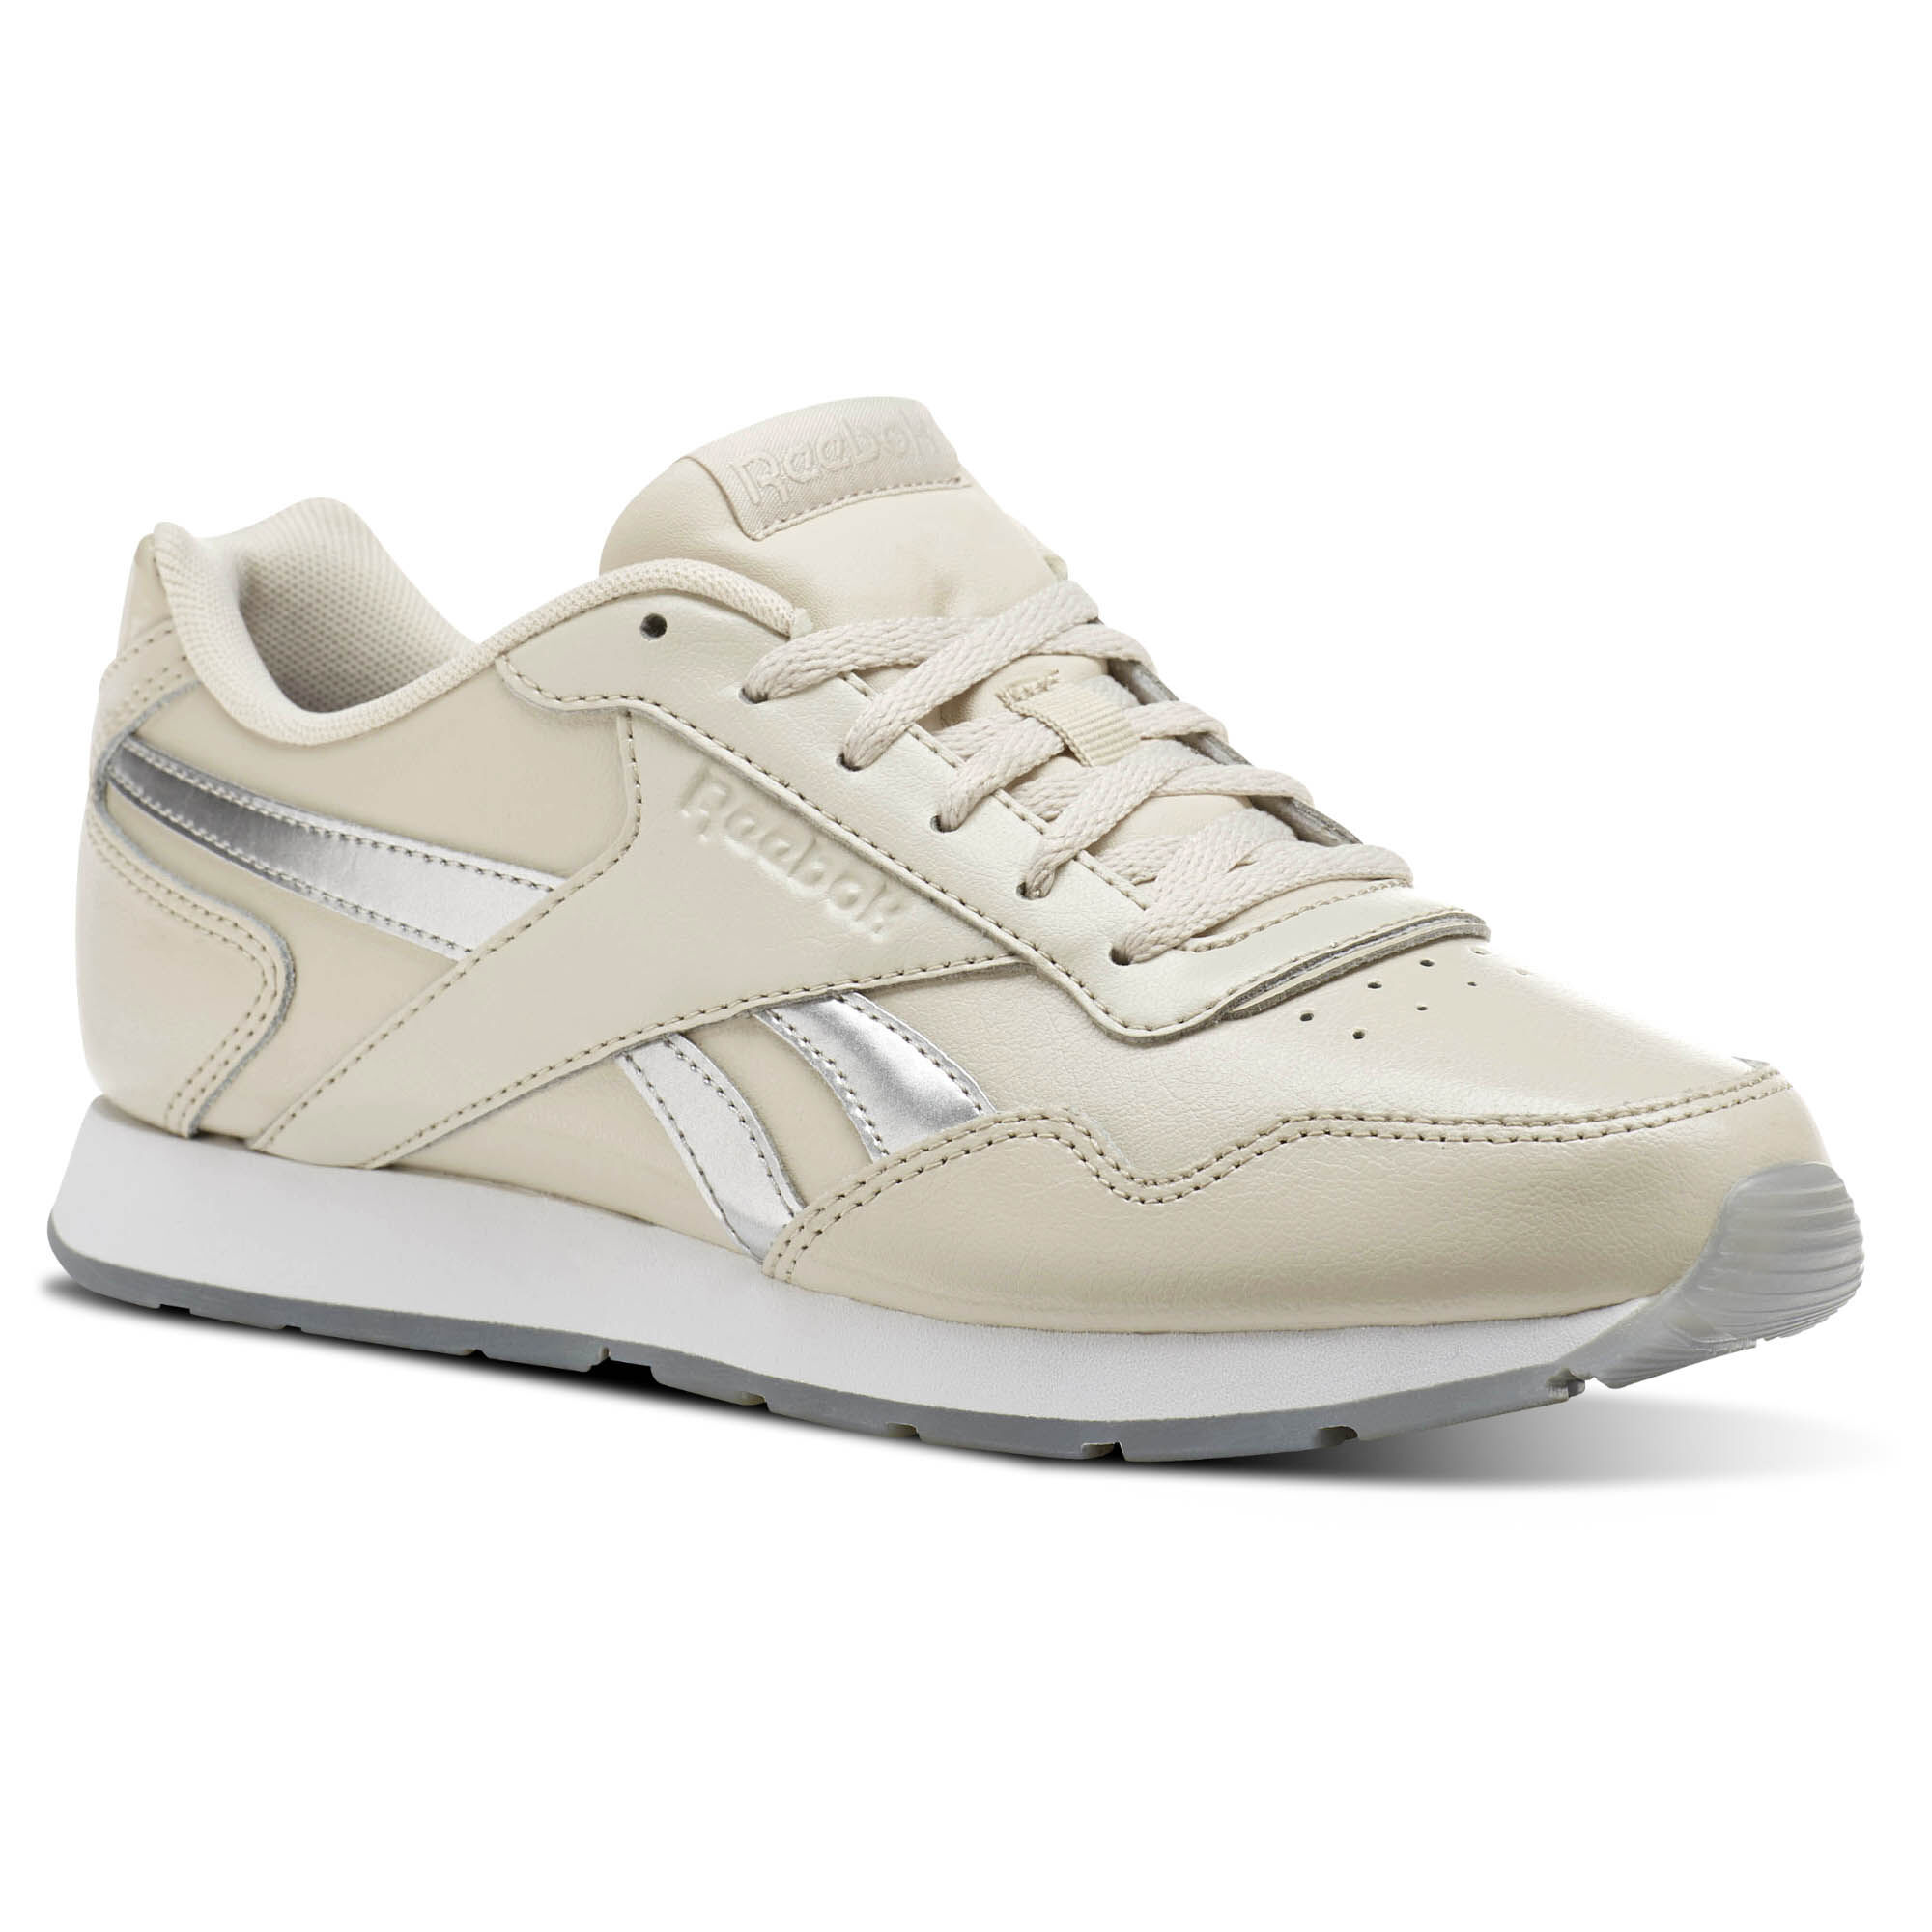 Reebok - Reebok Royal Glide Stucco/Silver Metallic/White CM9485